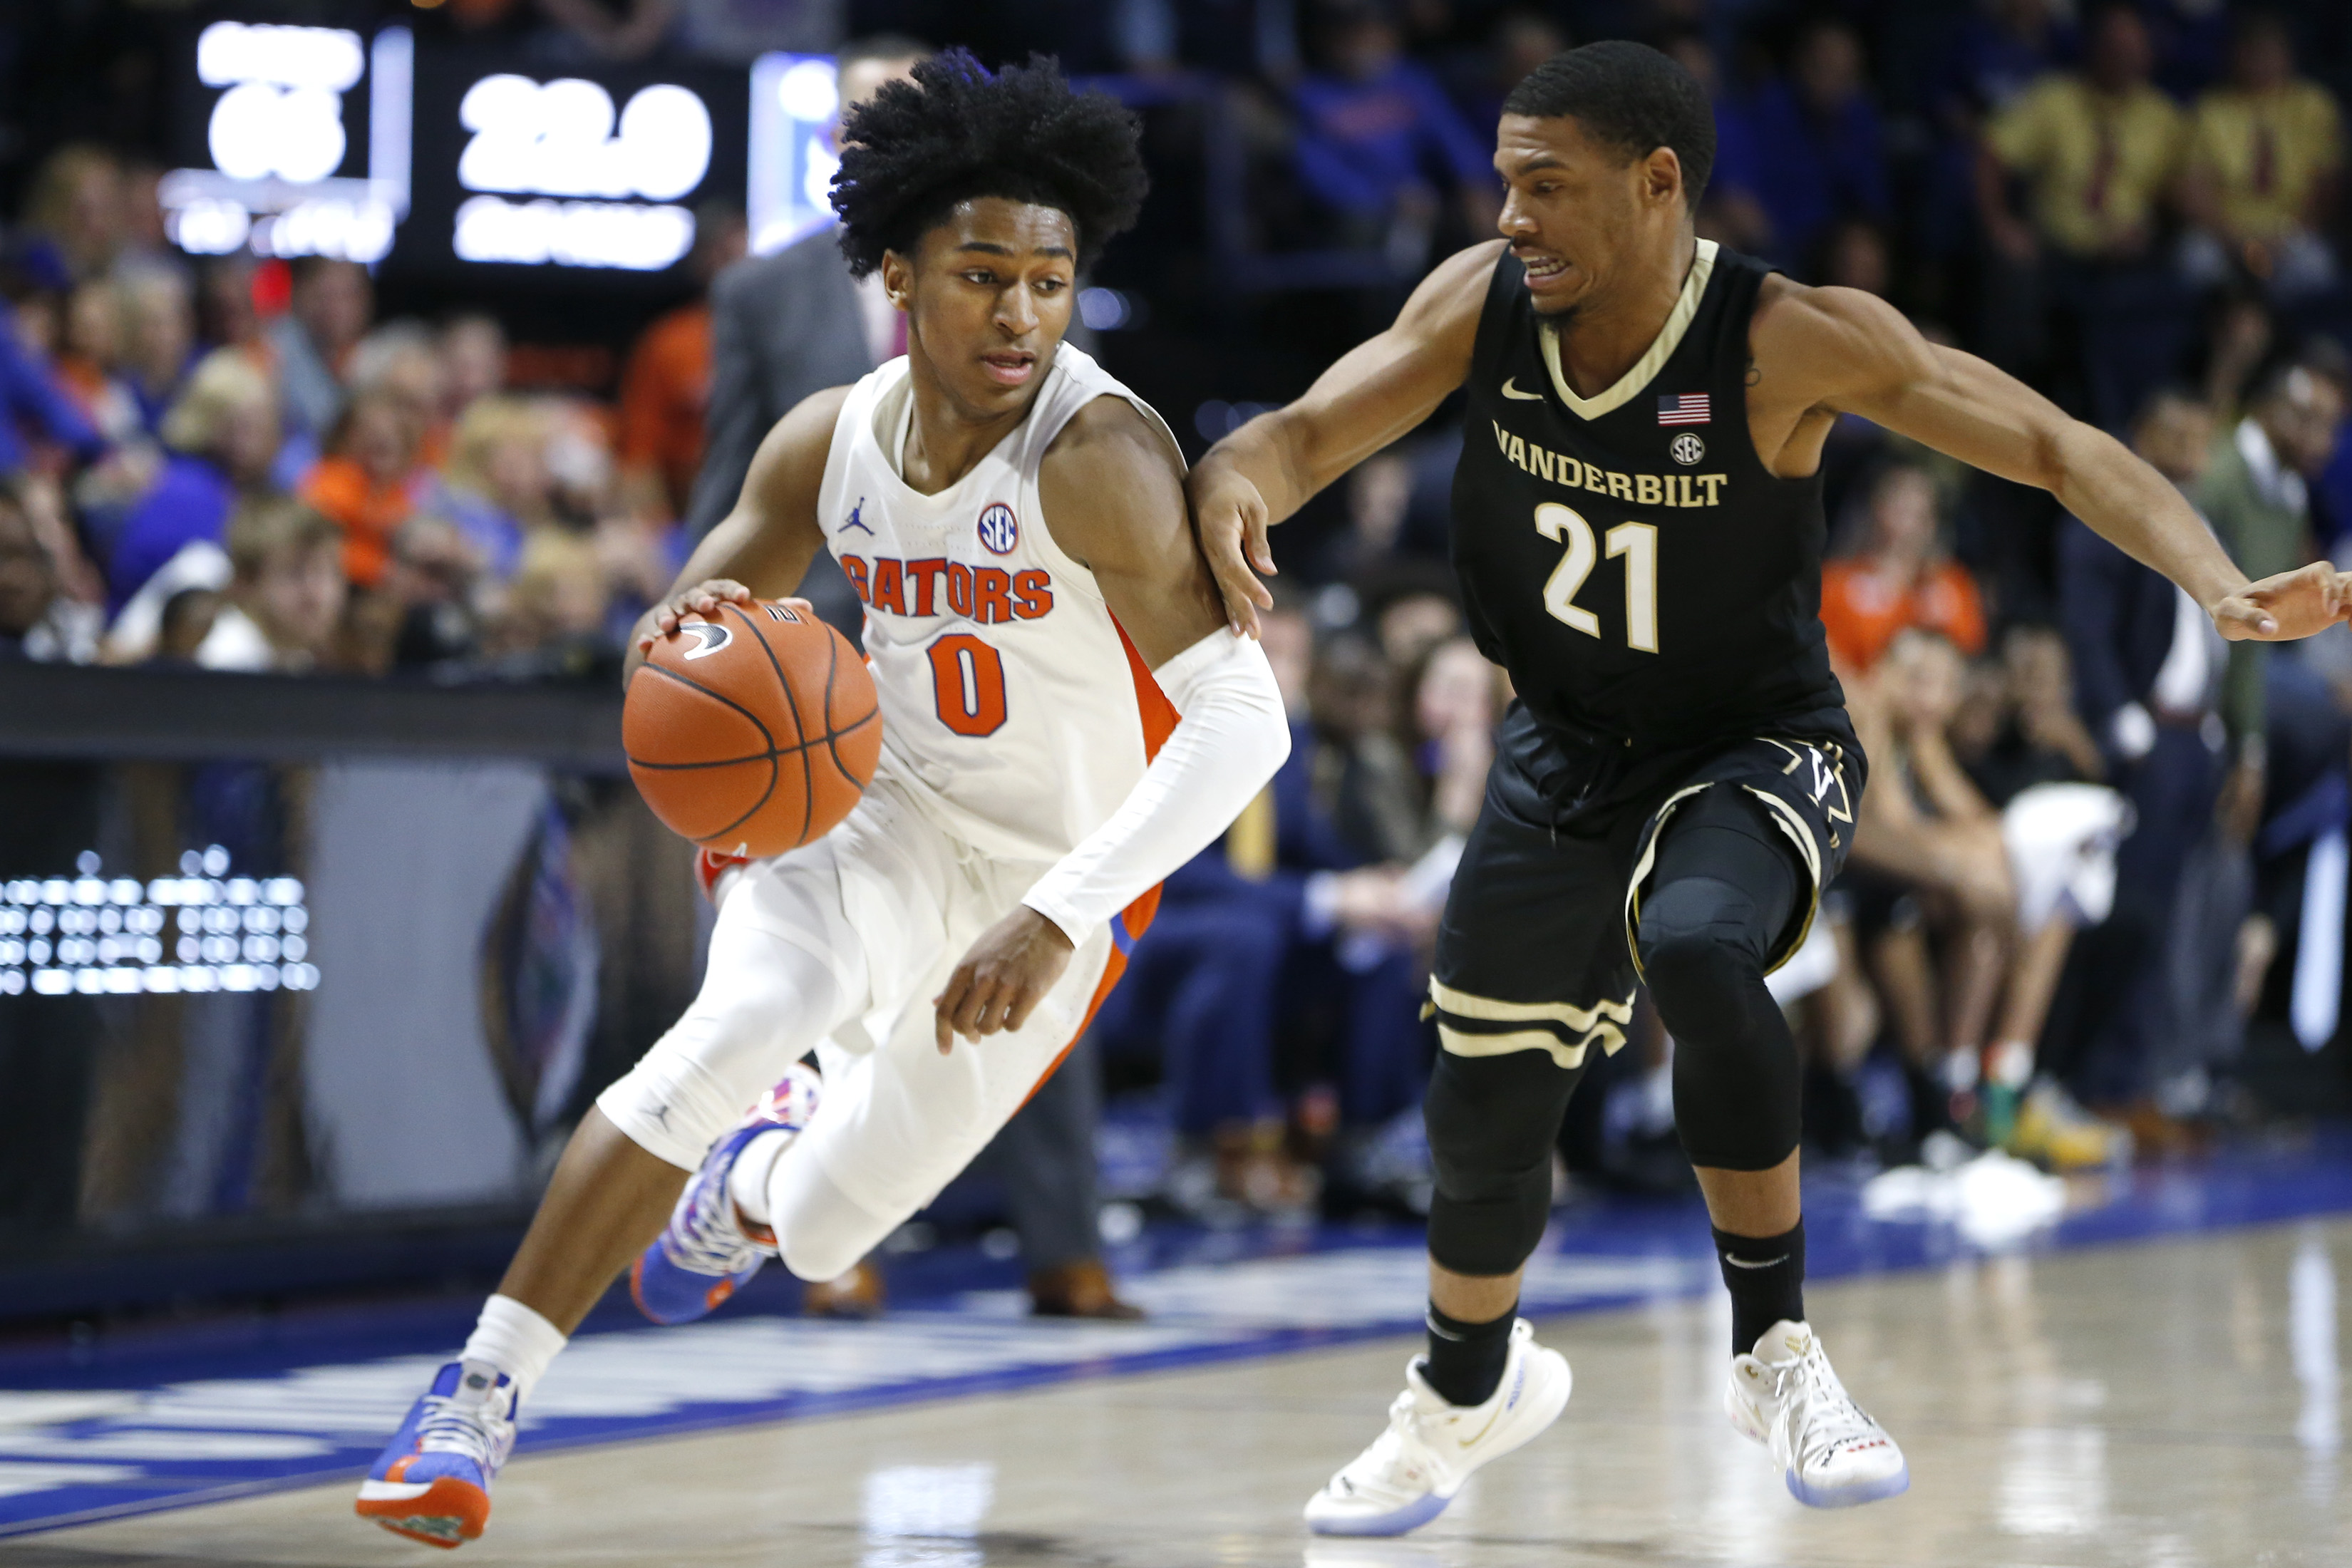 Three Takeaways From Florida's 84-66 Win Over Vanderbilt